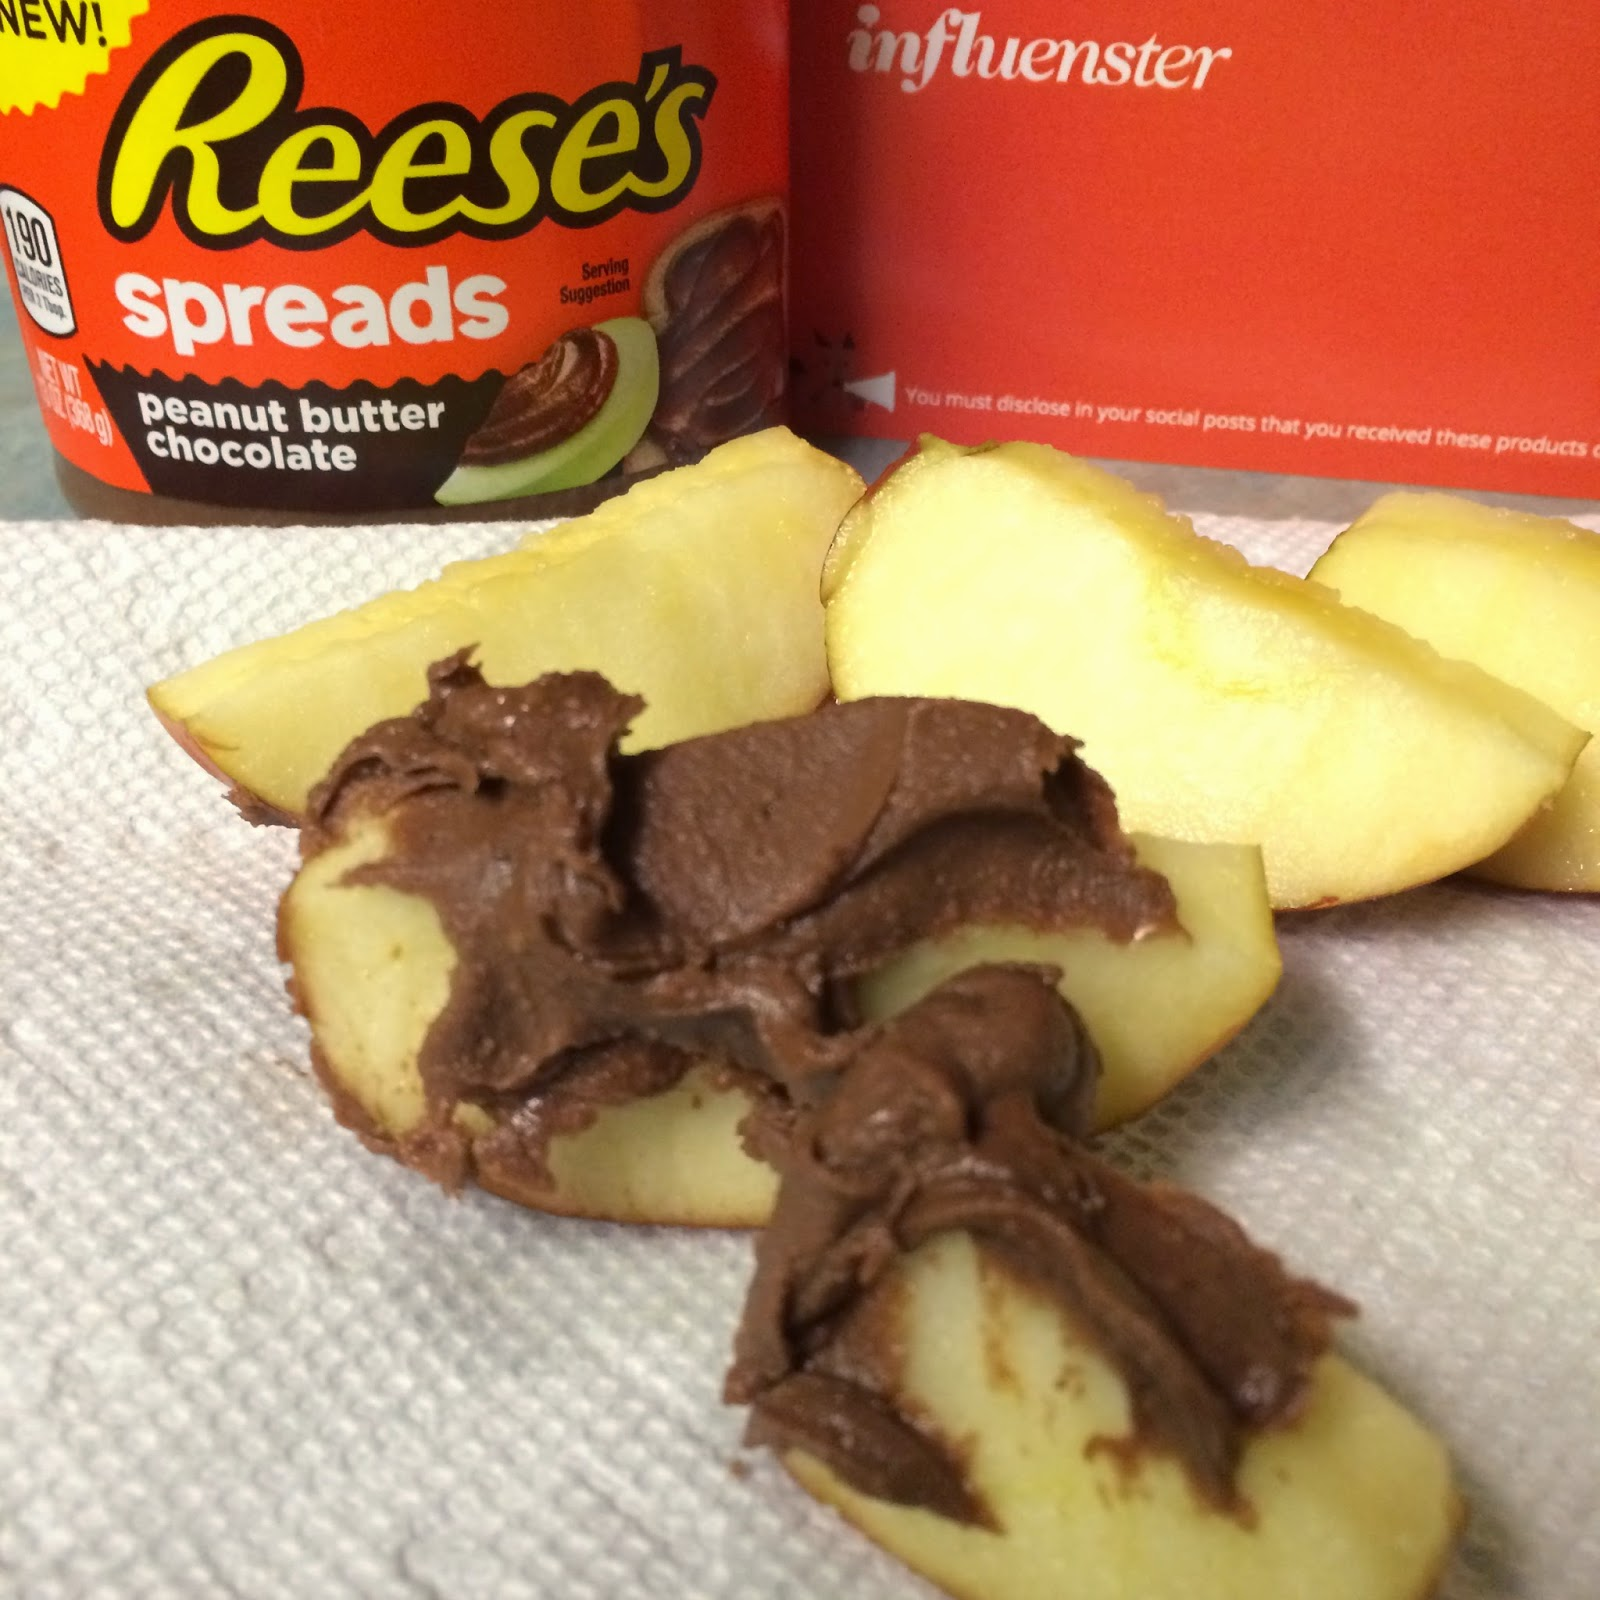 Reese's Spreads on apple #reesesspreads #review